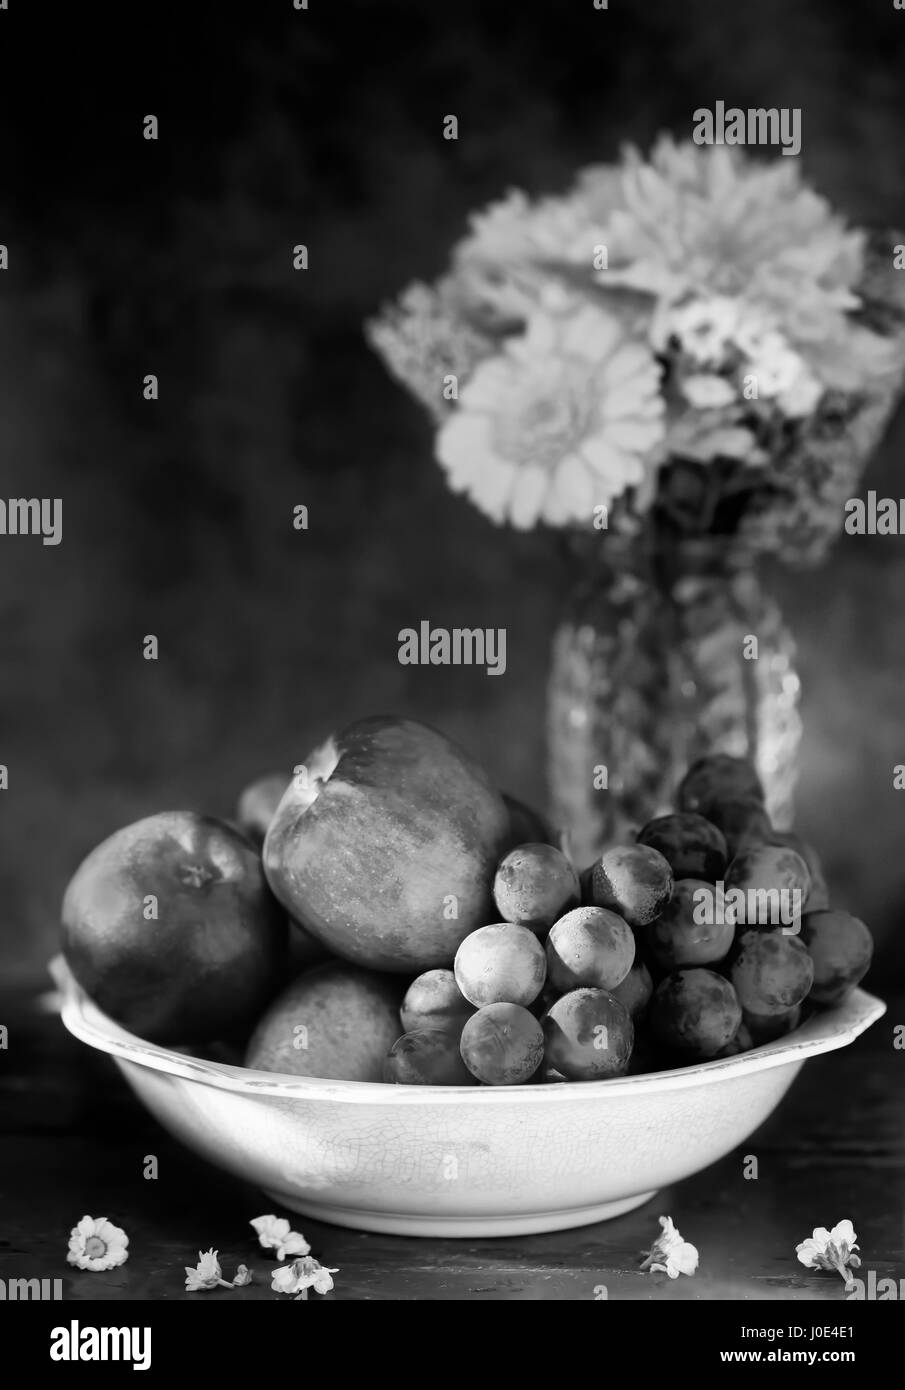 Still life apples and grapes - Stock Image